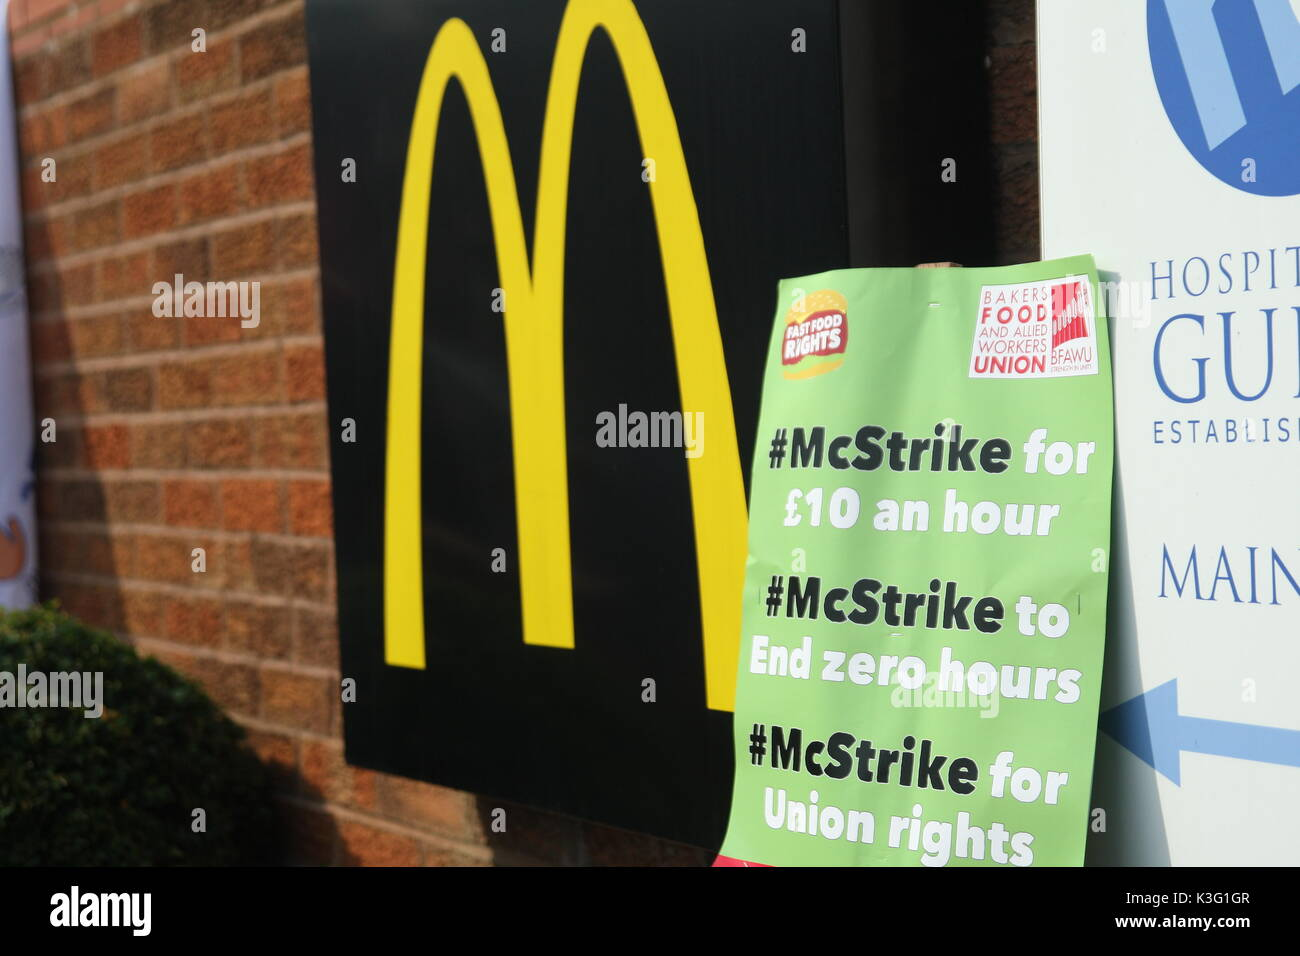 London, UK, 2nd September 2017.Mc Donalds workers and their supporters rally outside the company's HQ in East Finchley. The Bakers Food and Allied Workers Union (BFAWU) organised the rally which precedes a strike at two McDonalds branches on Monday. A placard leans against the McDonalds logo, it says: 'McStrike for £10 an hour, McStrike to end zero hours, McStrike for union rights'. Roland Ravenhill/Alamy Live News - Stock Image